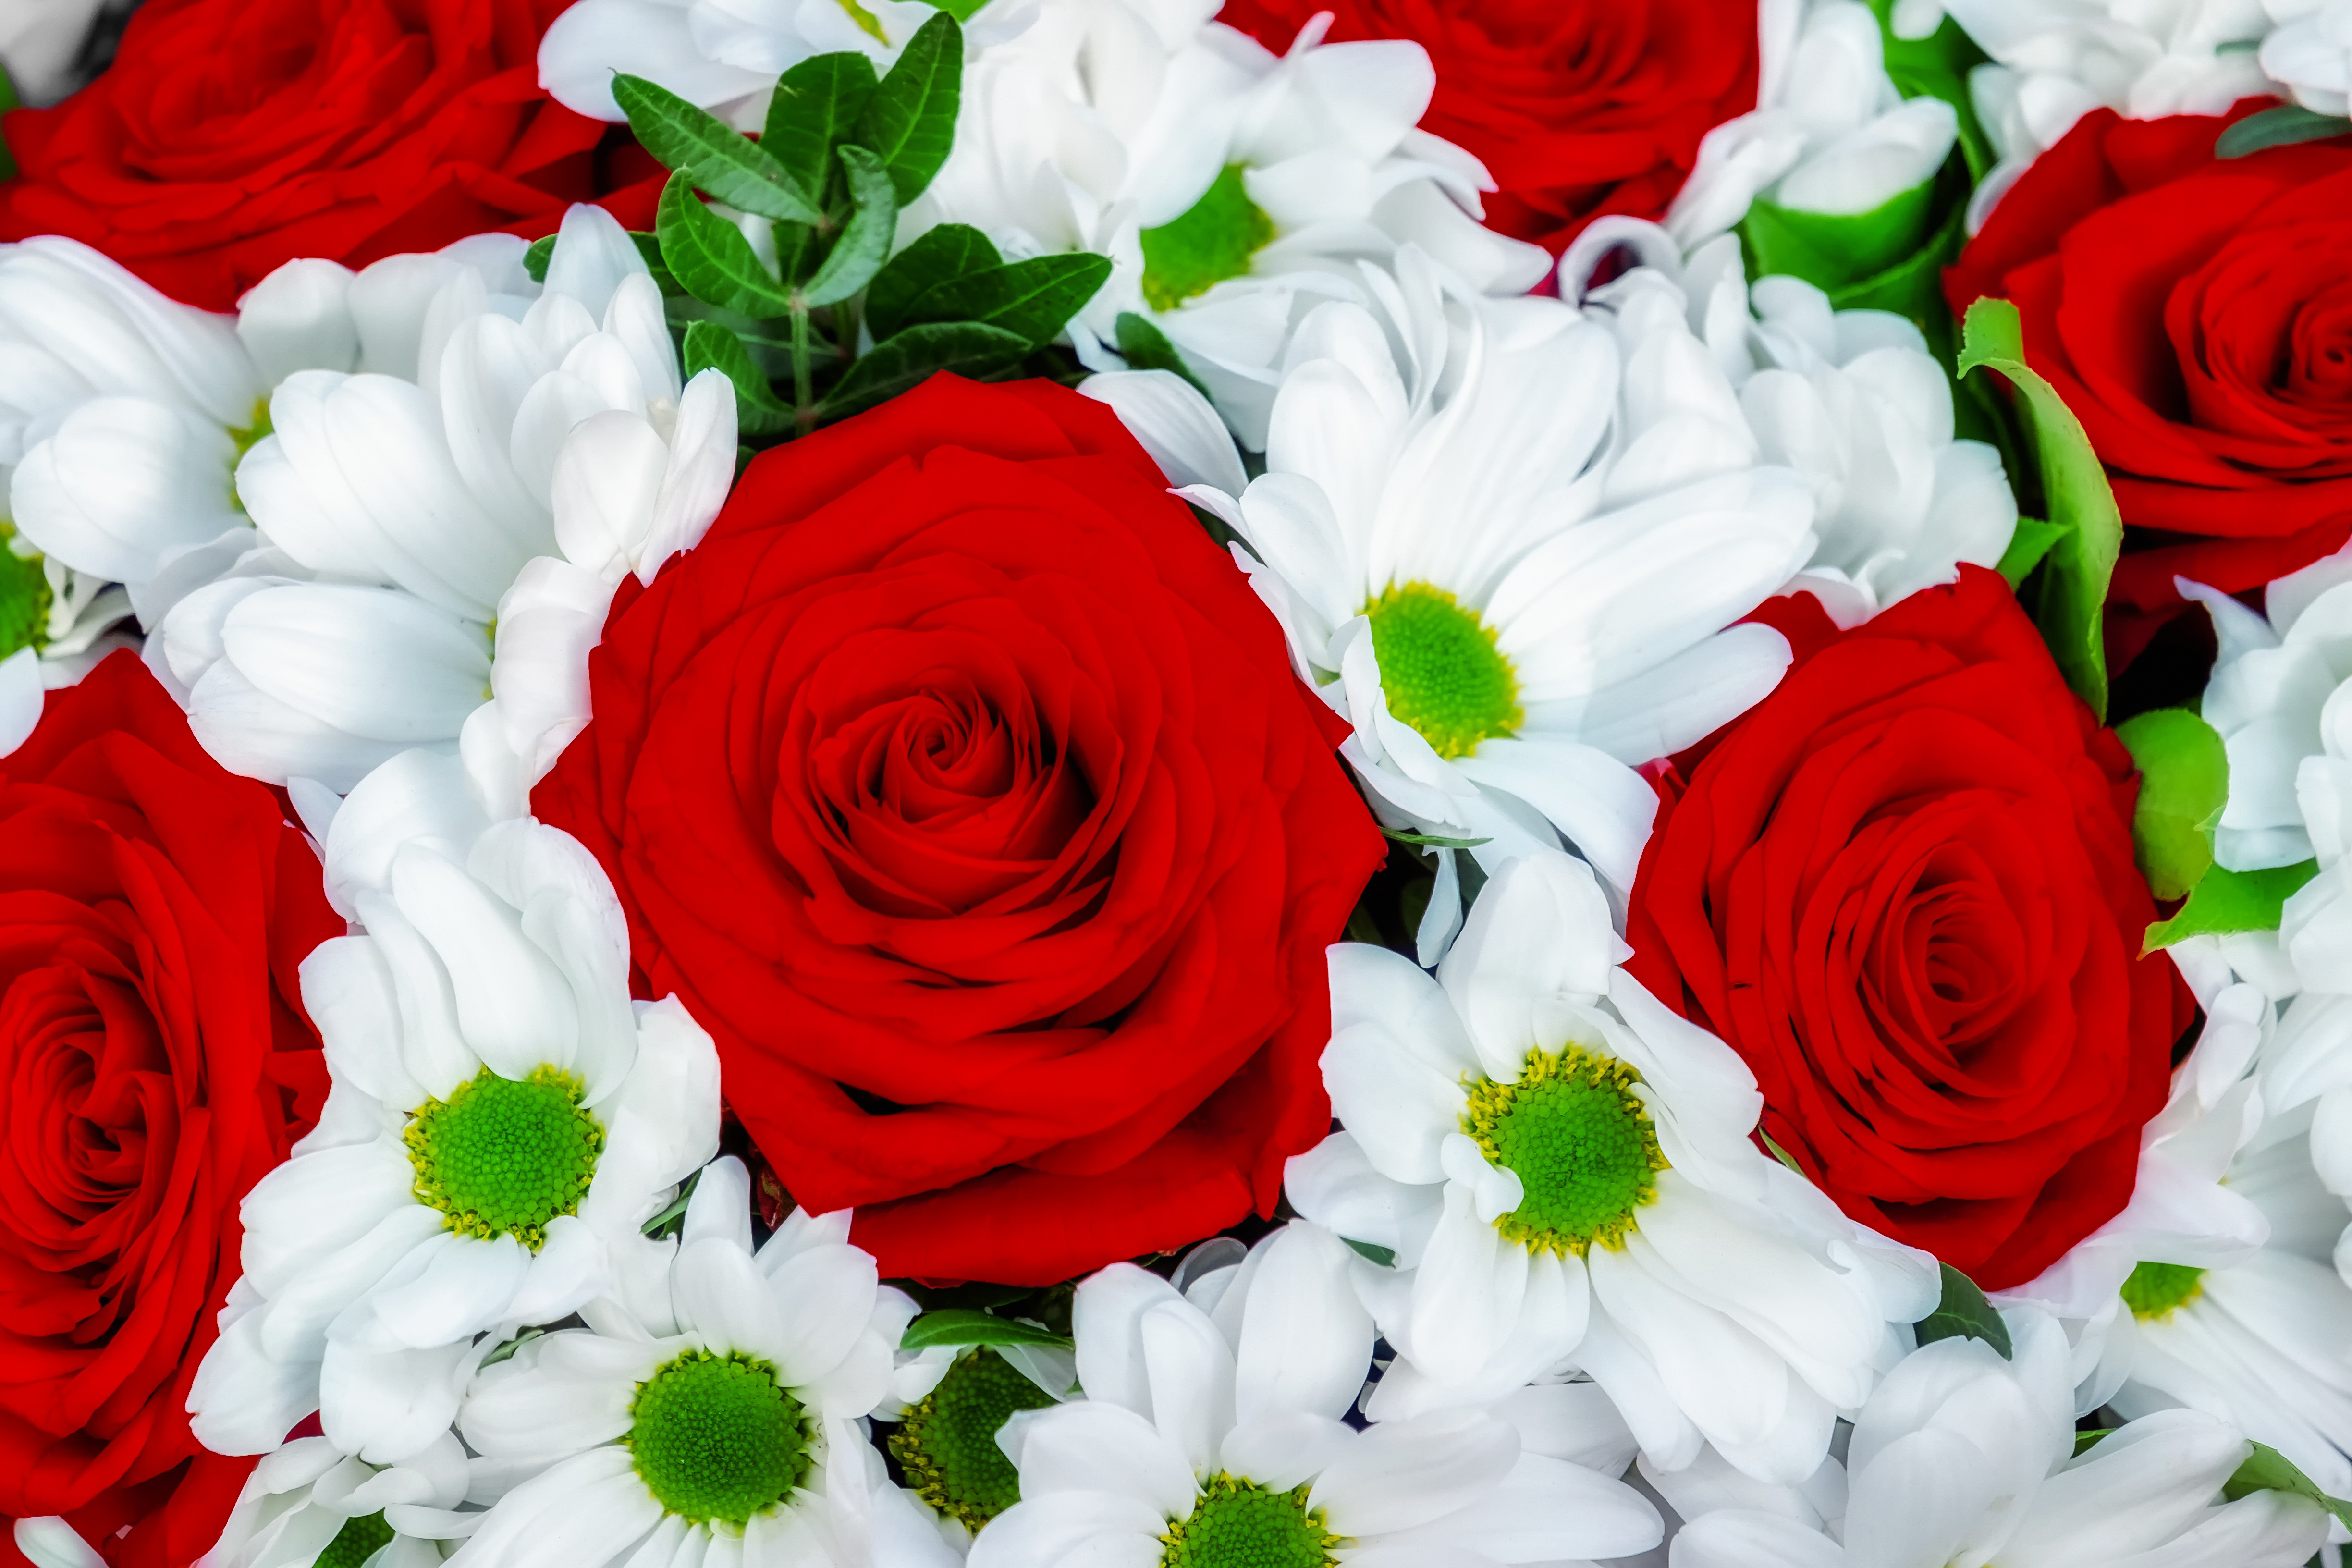 roses, daisy, bouquet, mother day, love, red, white,